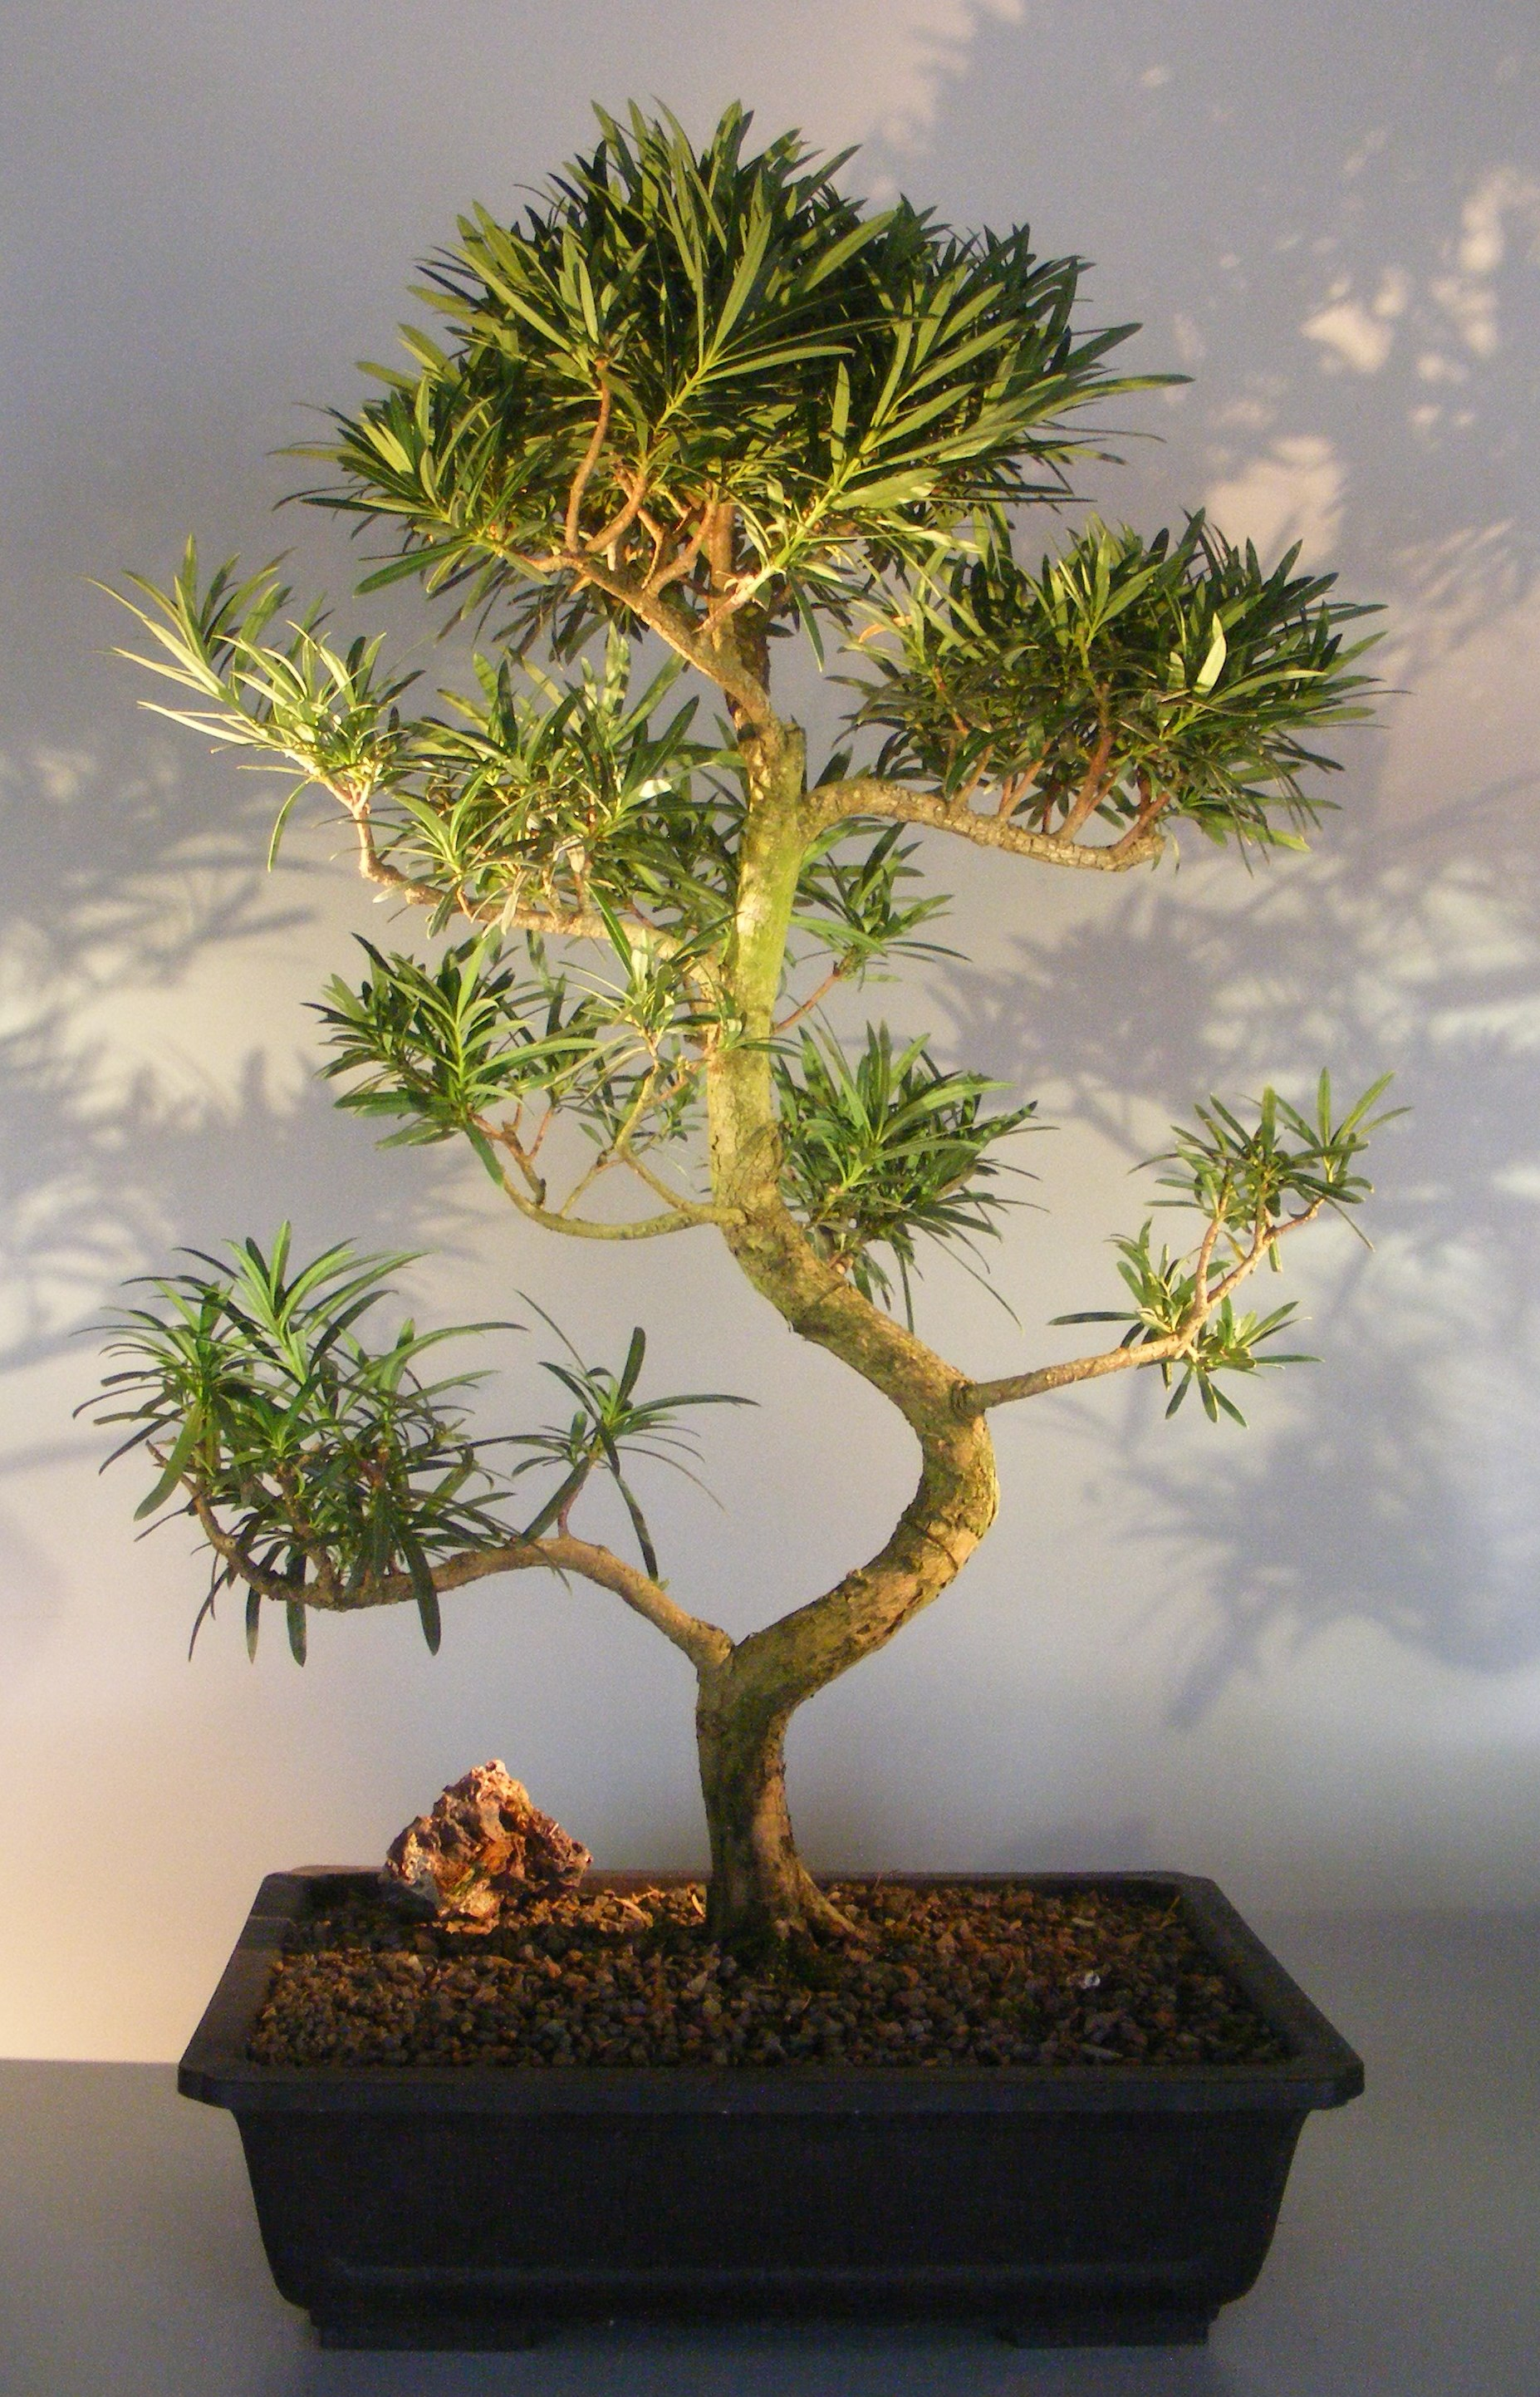 Flowering Podocarpus Bonsai Tree Curved Trunk Style Podocarpus Macrophyllus